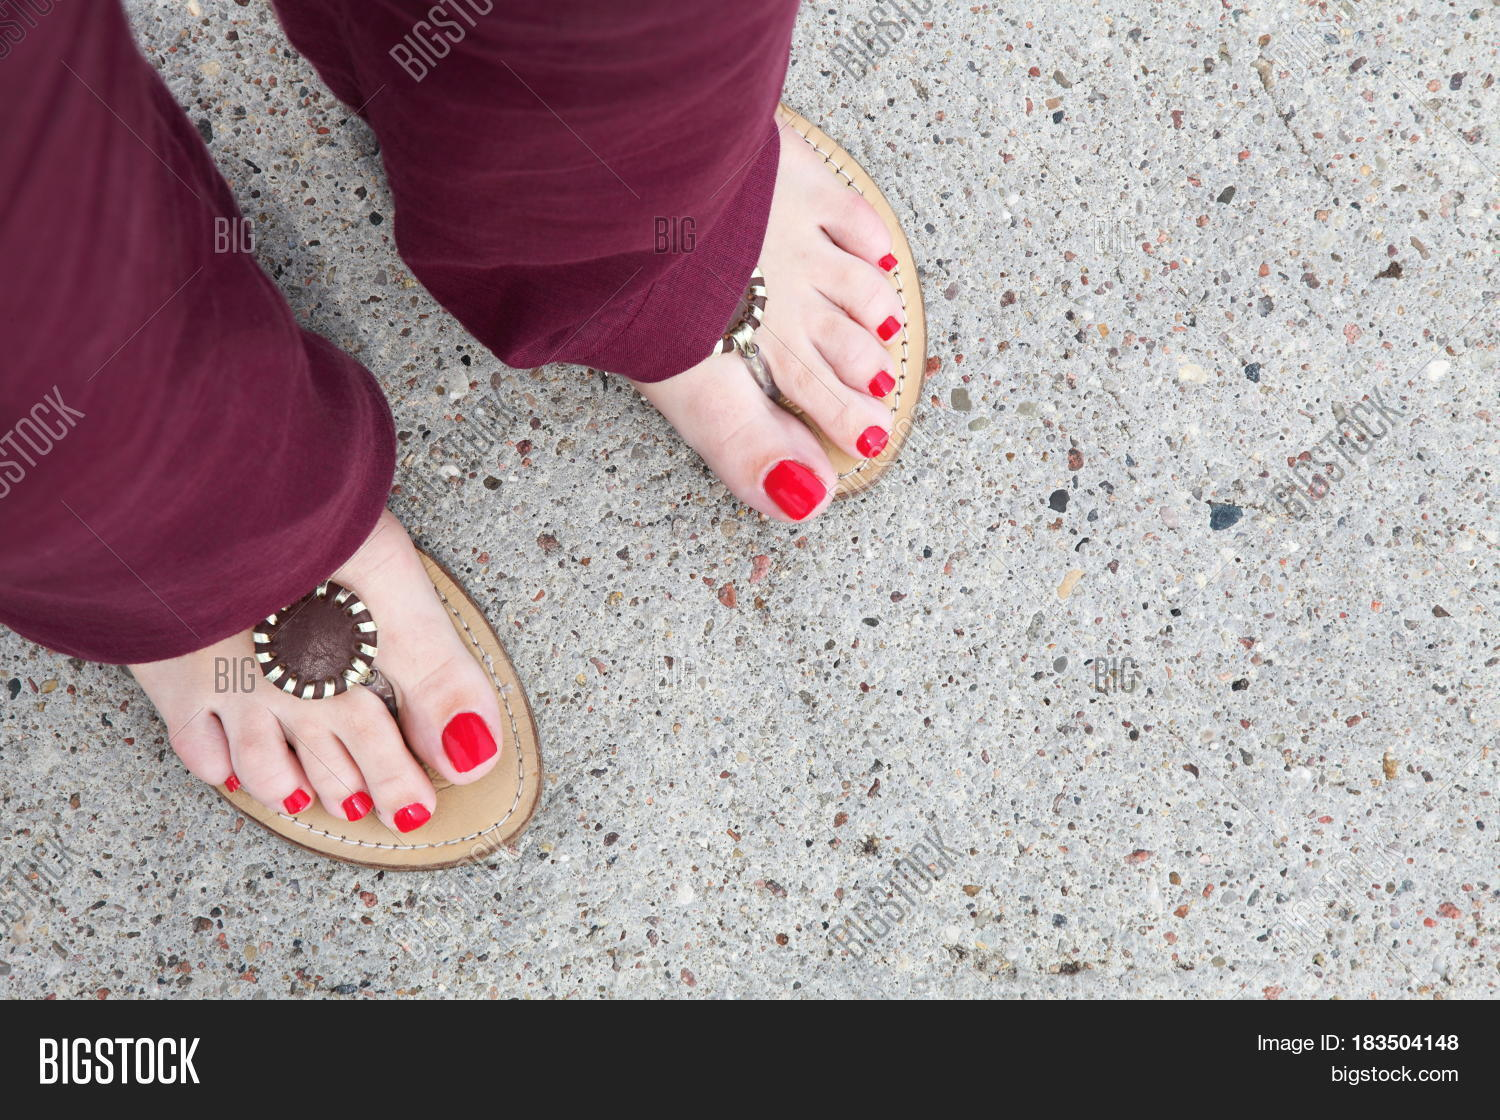 0b46e81af72b28 feet of a caucasian woman wearing red nail-polish and flip-flops